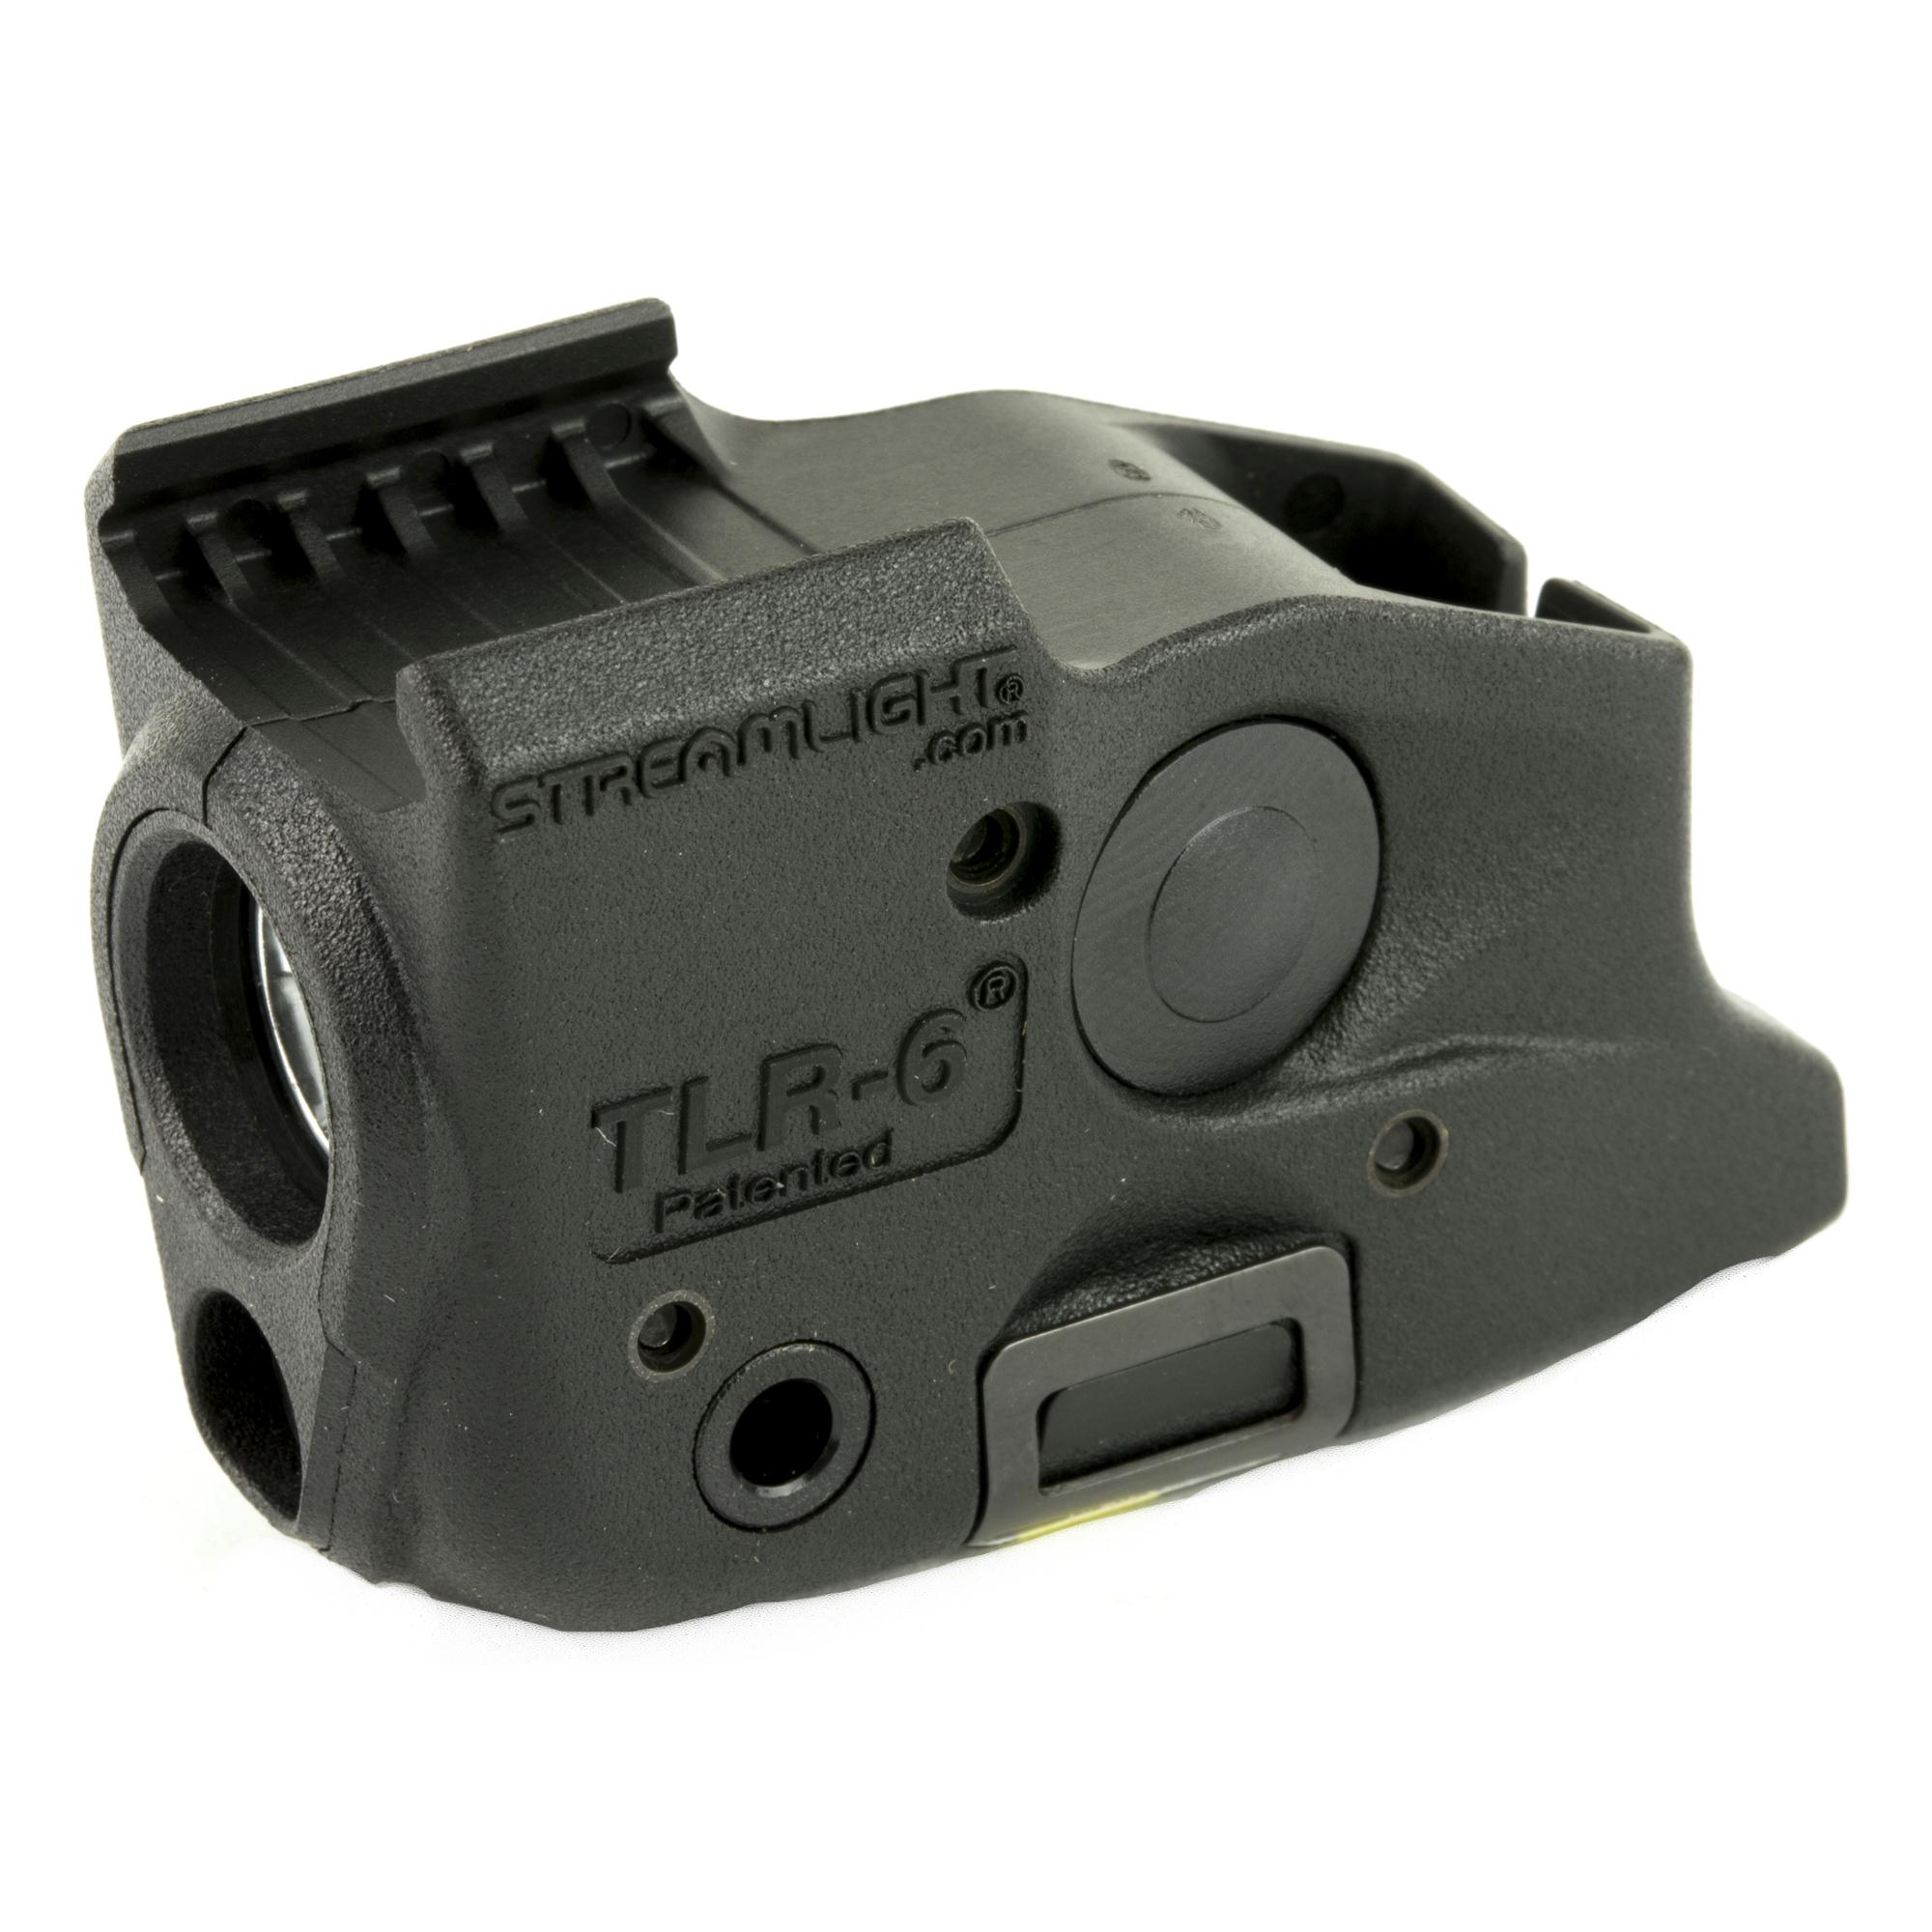 Streamlight TLR-6 Rail Mount For Glock 17, 22, 19, 23